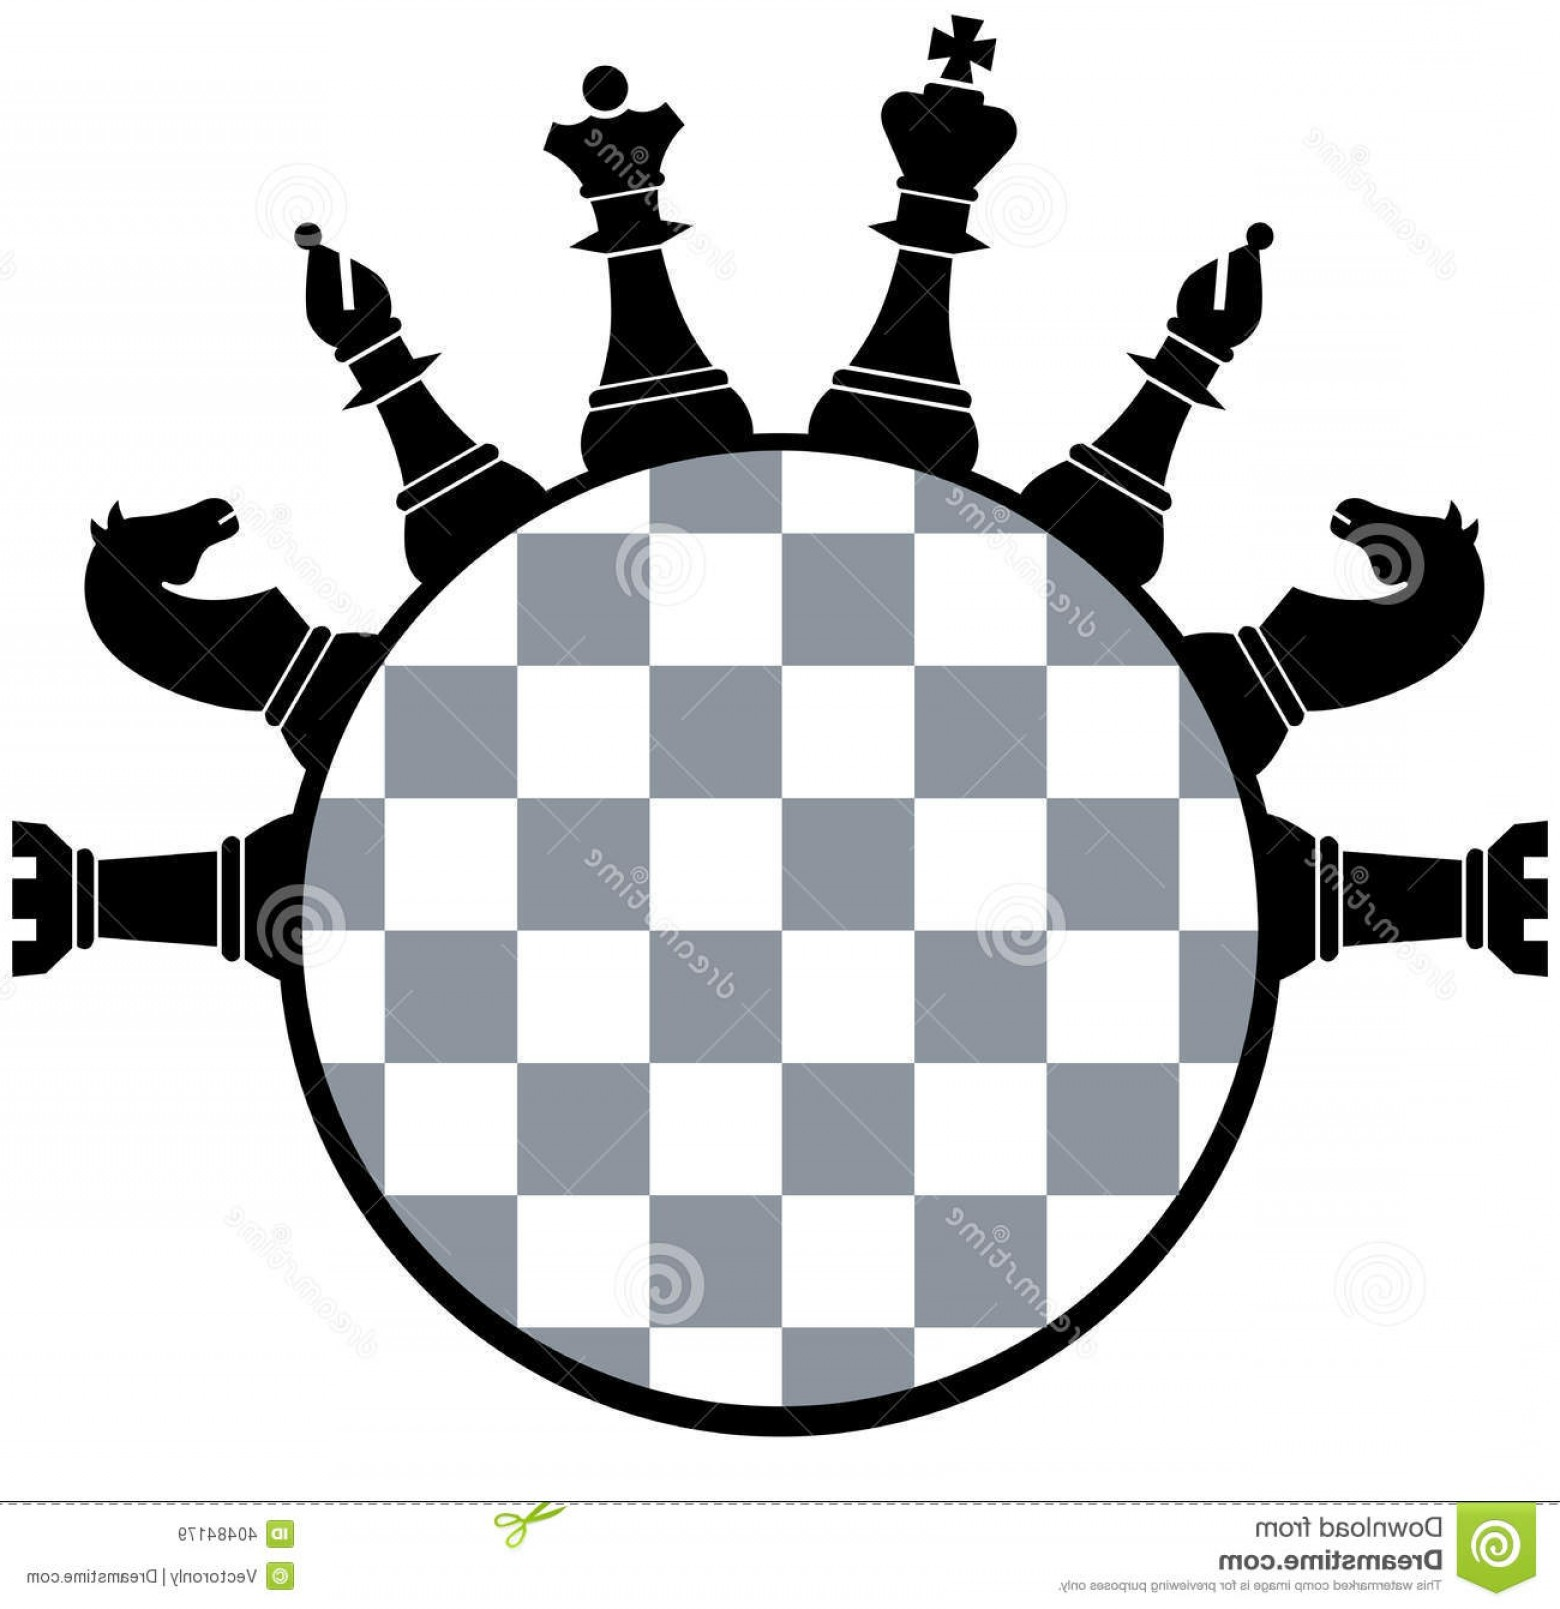 Vector Chess Board: Royalty Free Stock Images Chess Board Pieces Vector Illustration Image